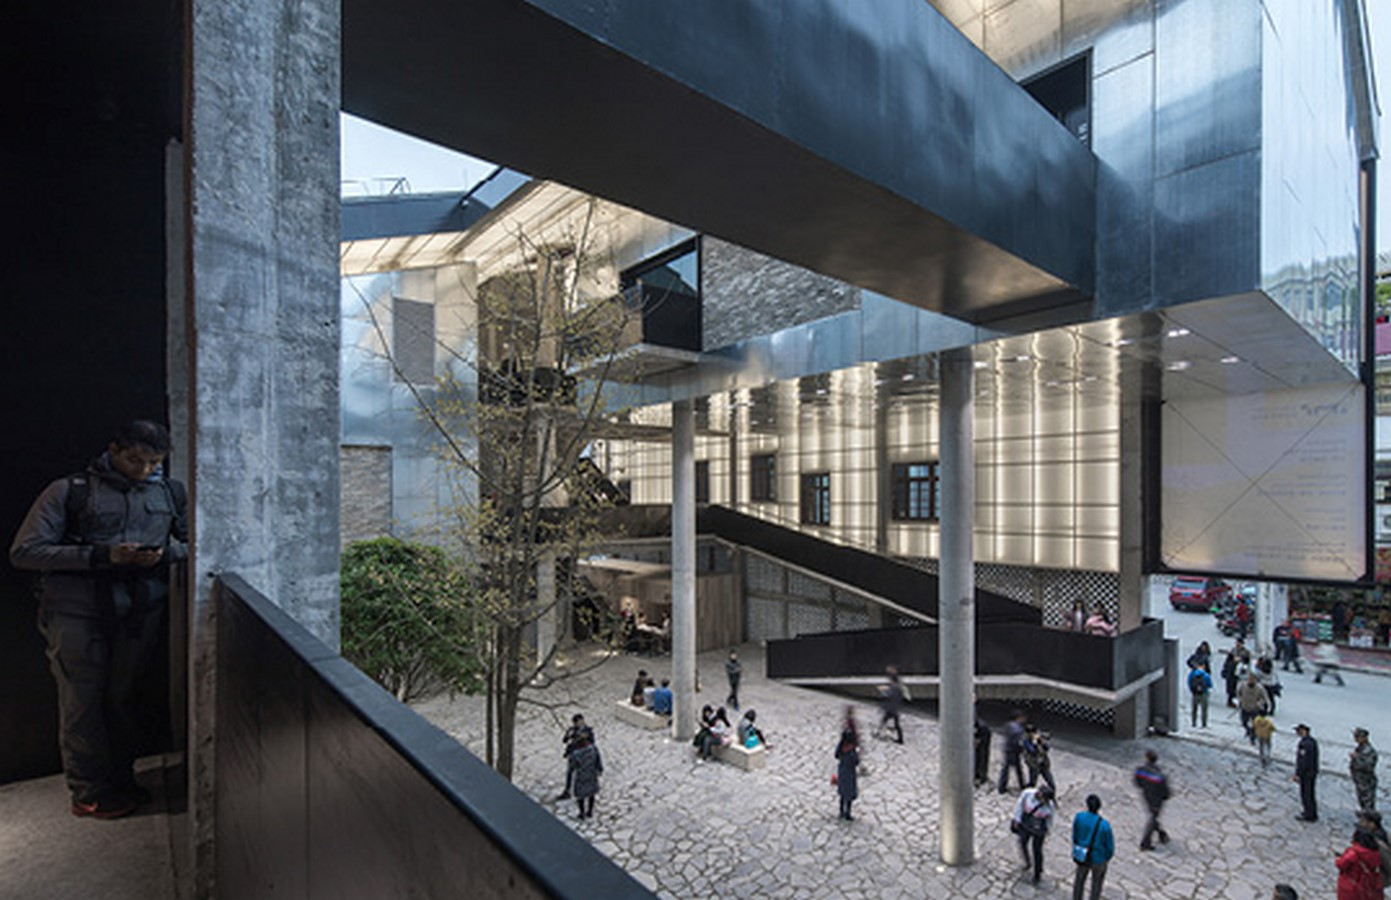 Winners of International Awards for Excellence 2021 announced by RIBA Sheet12